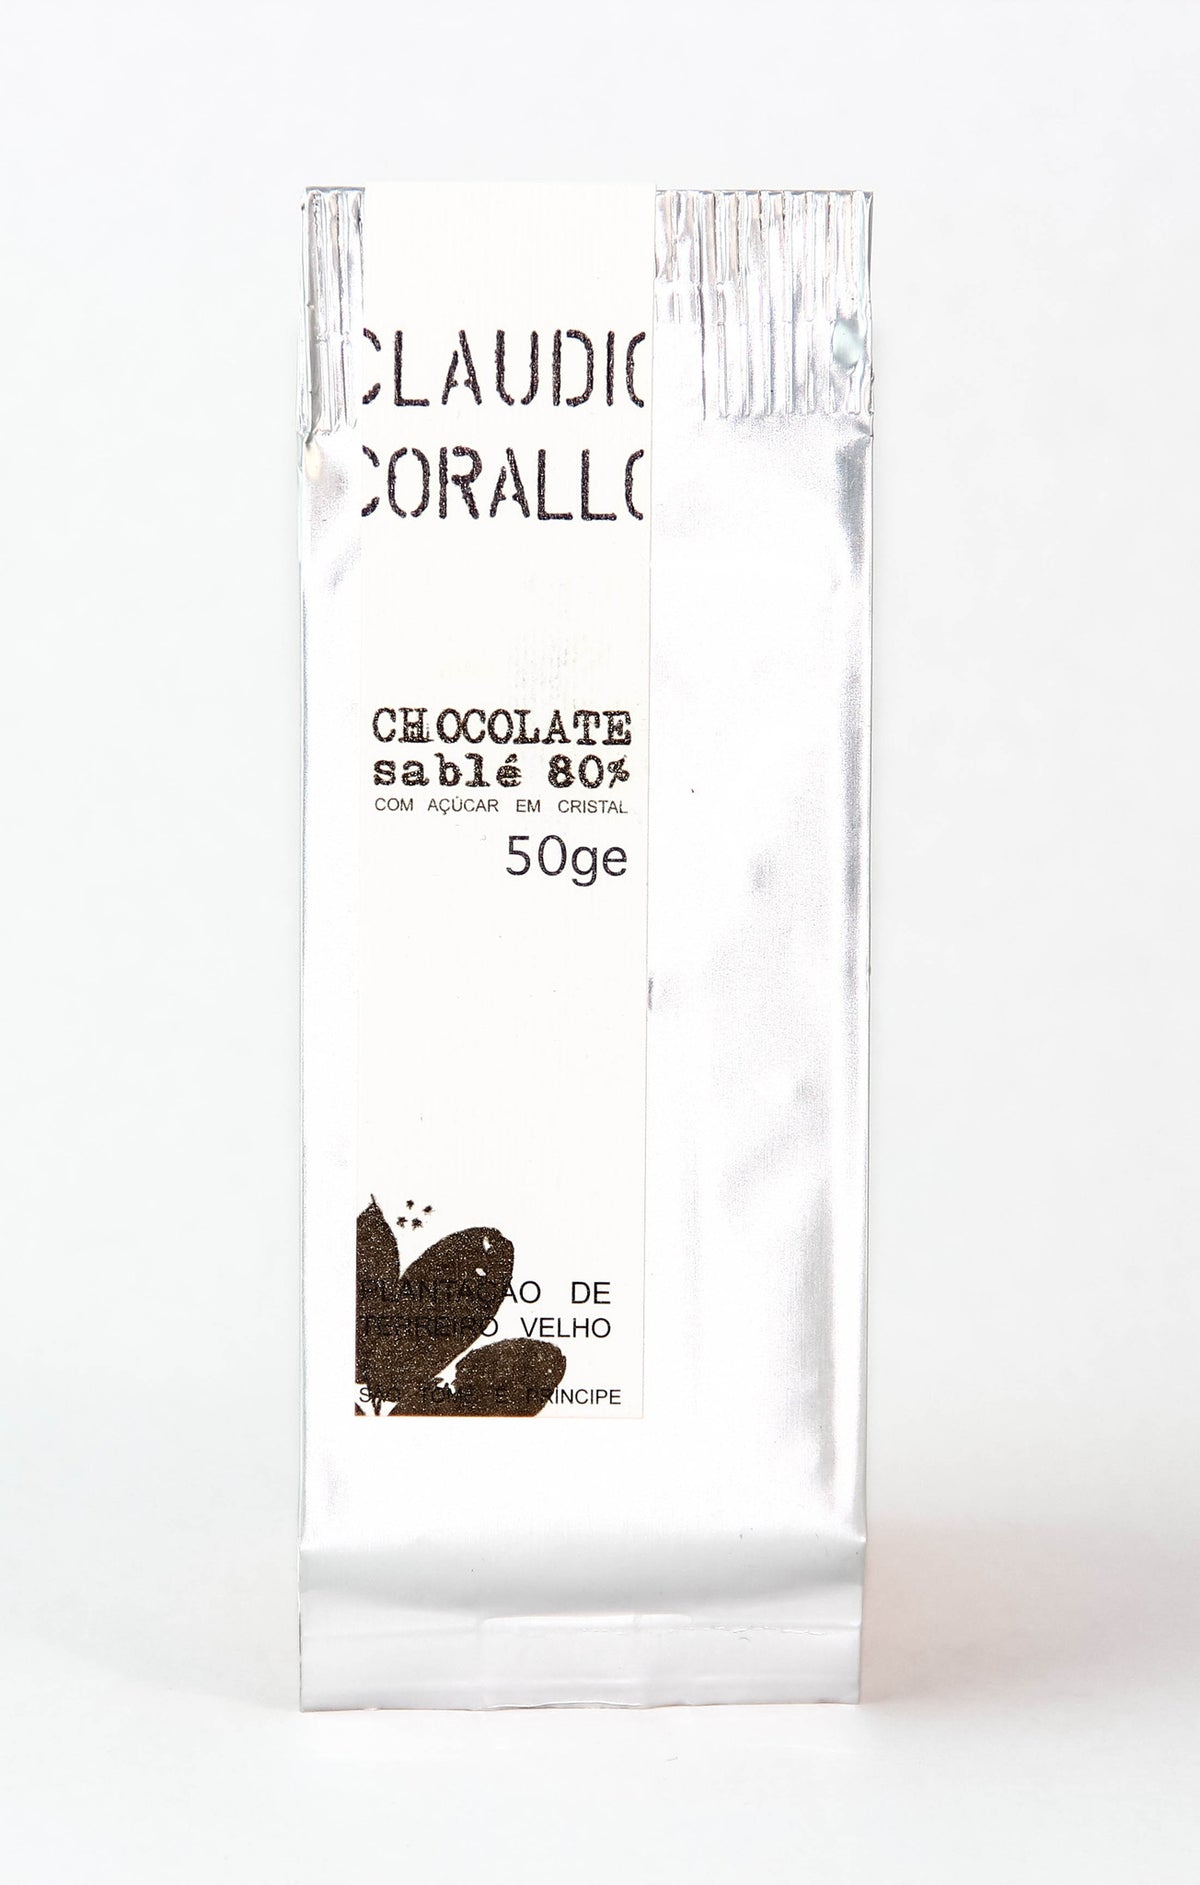 Claudio Corallo 80% Sable Dark Chocolate-Chocolate-The Meadow